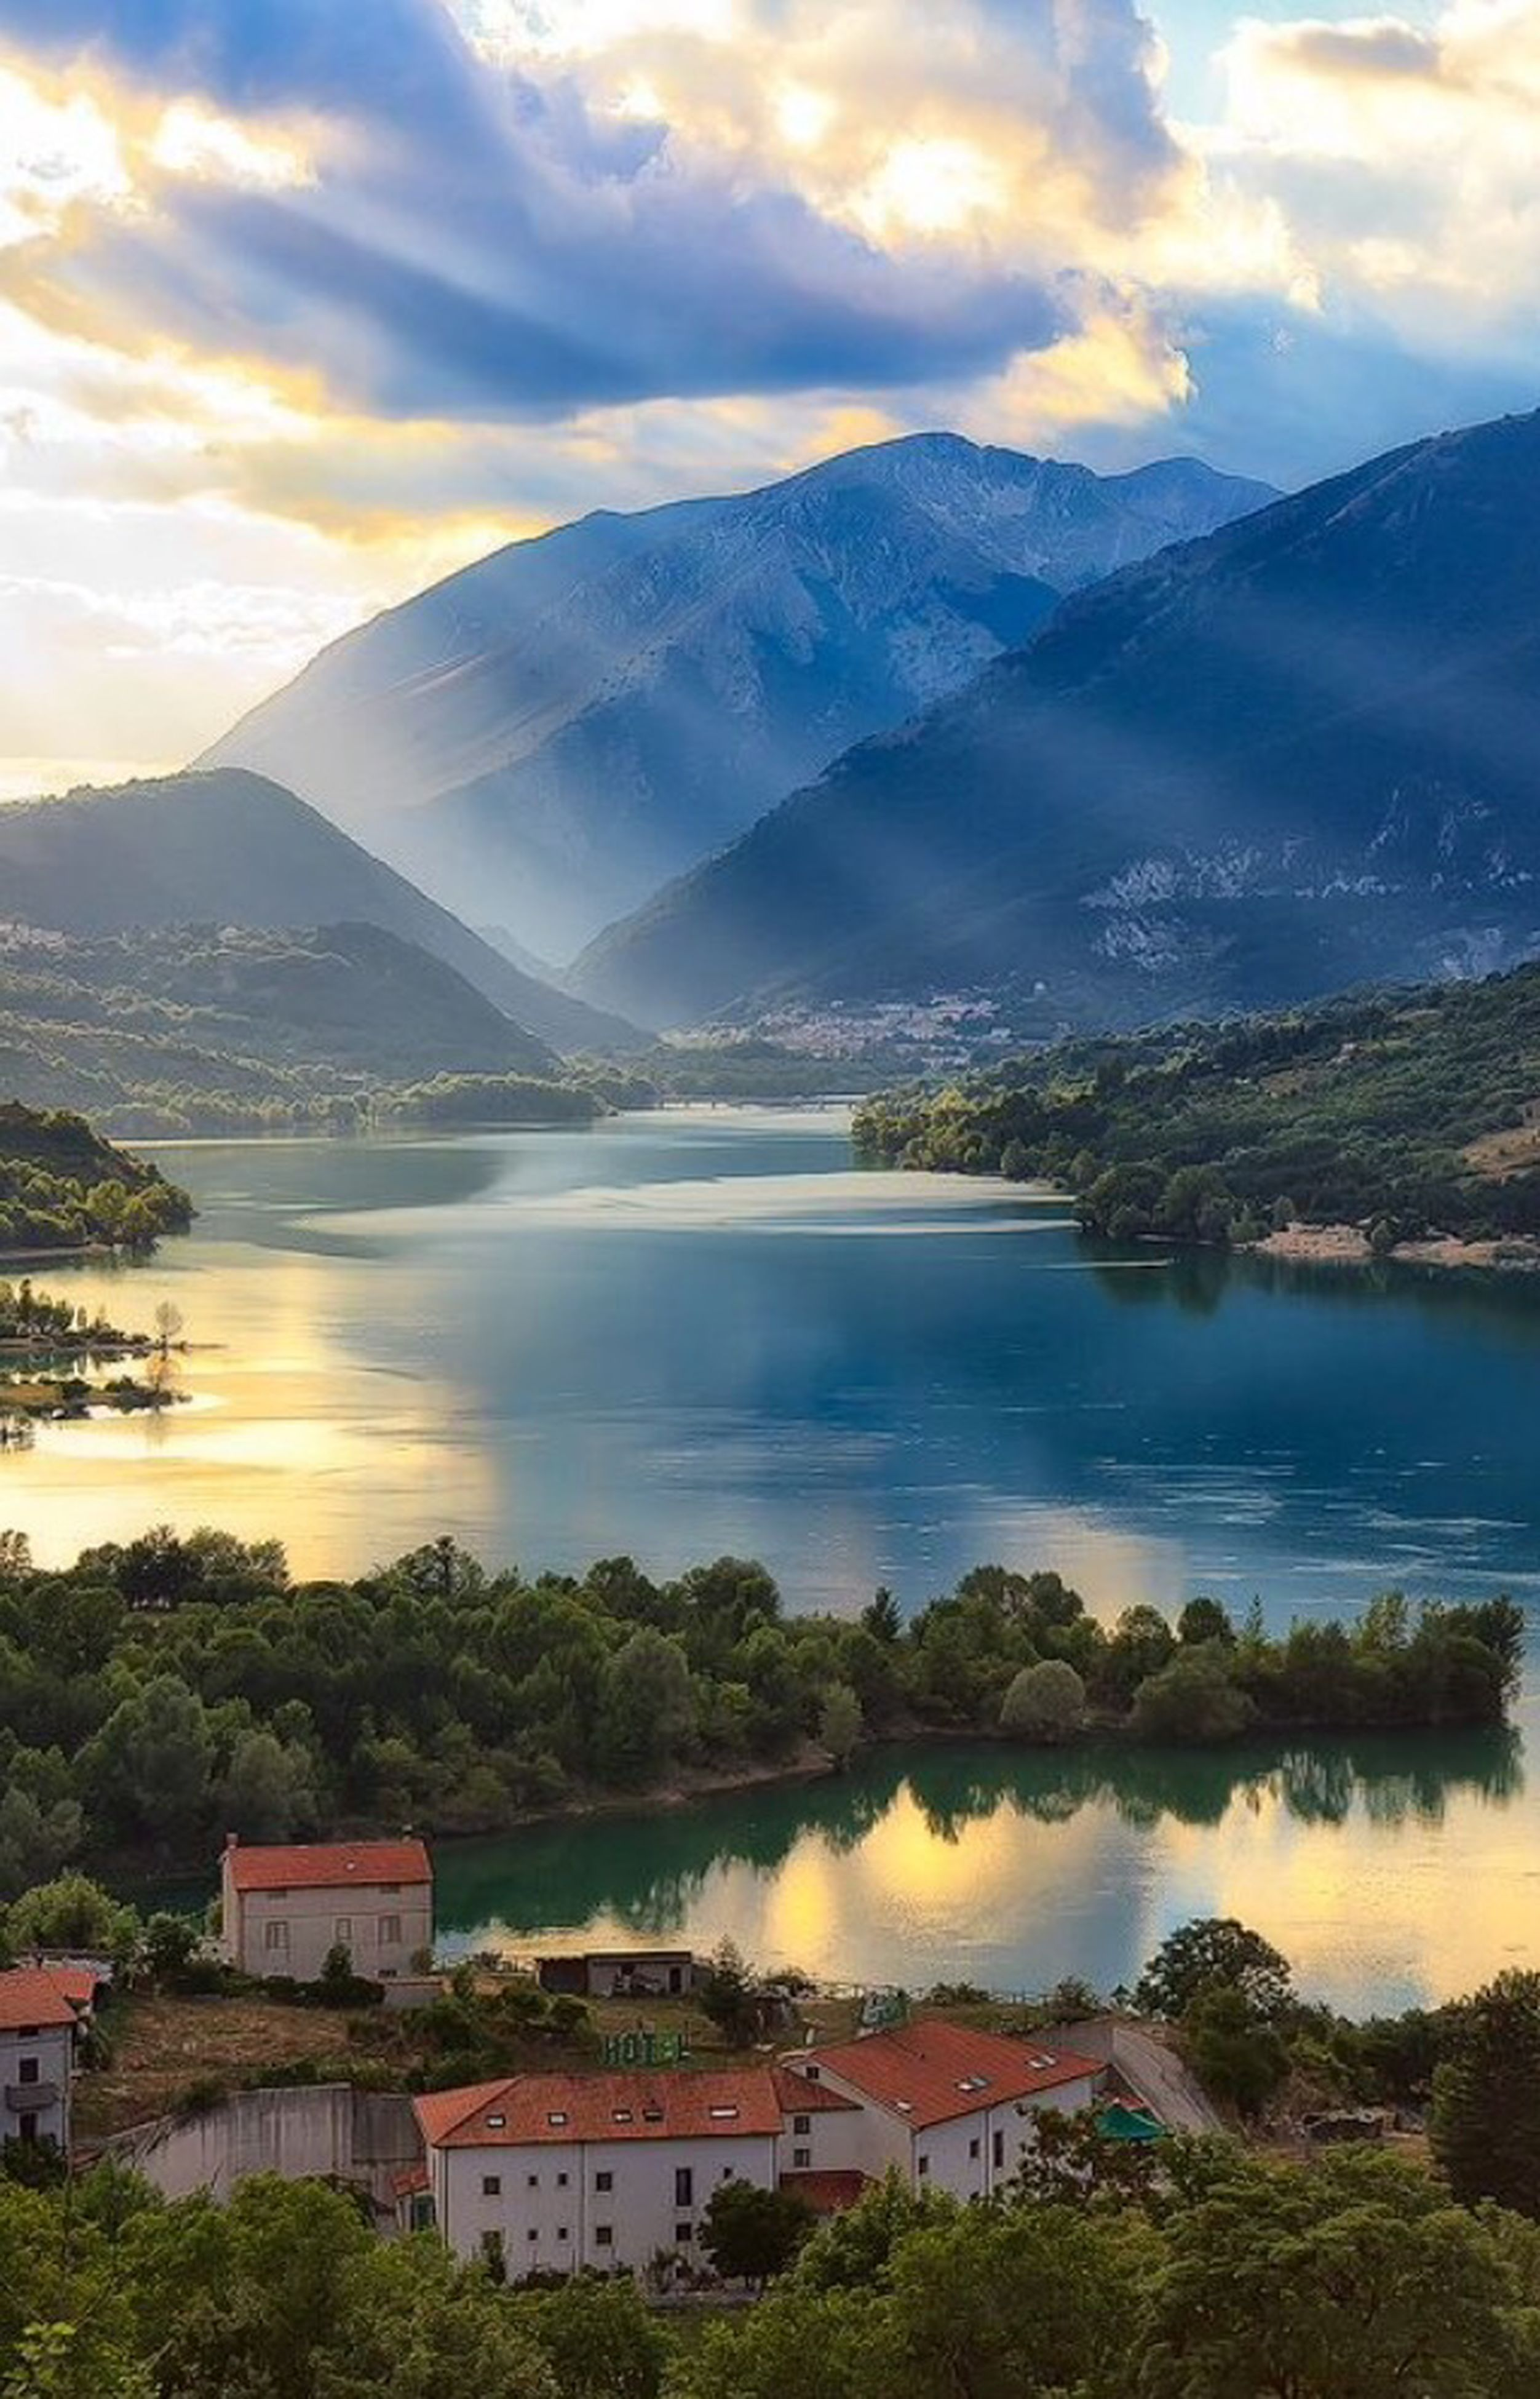 mountain, mountain range, water, scenics, sky, tranquil scene, lake, beauty in nature, tranquility, tree, sunset, nature, cloud - sky, river, built structure, idyllic, landscape, building exterior, architecture, reflection